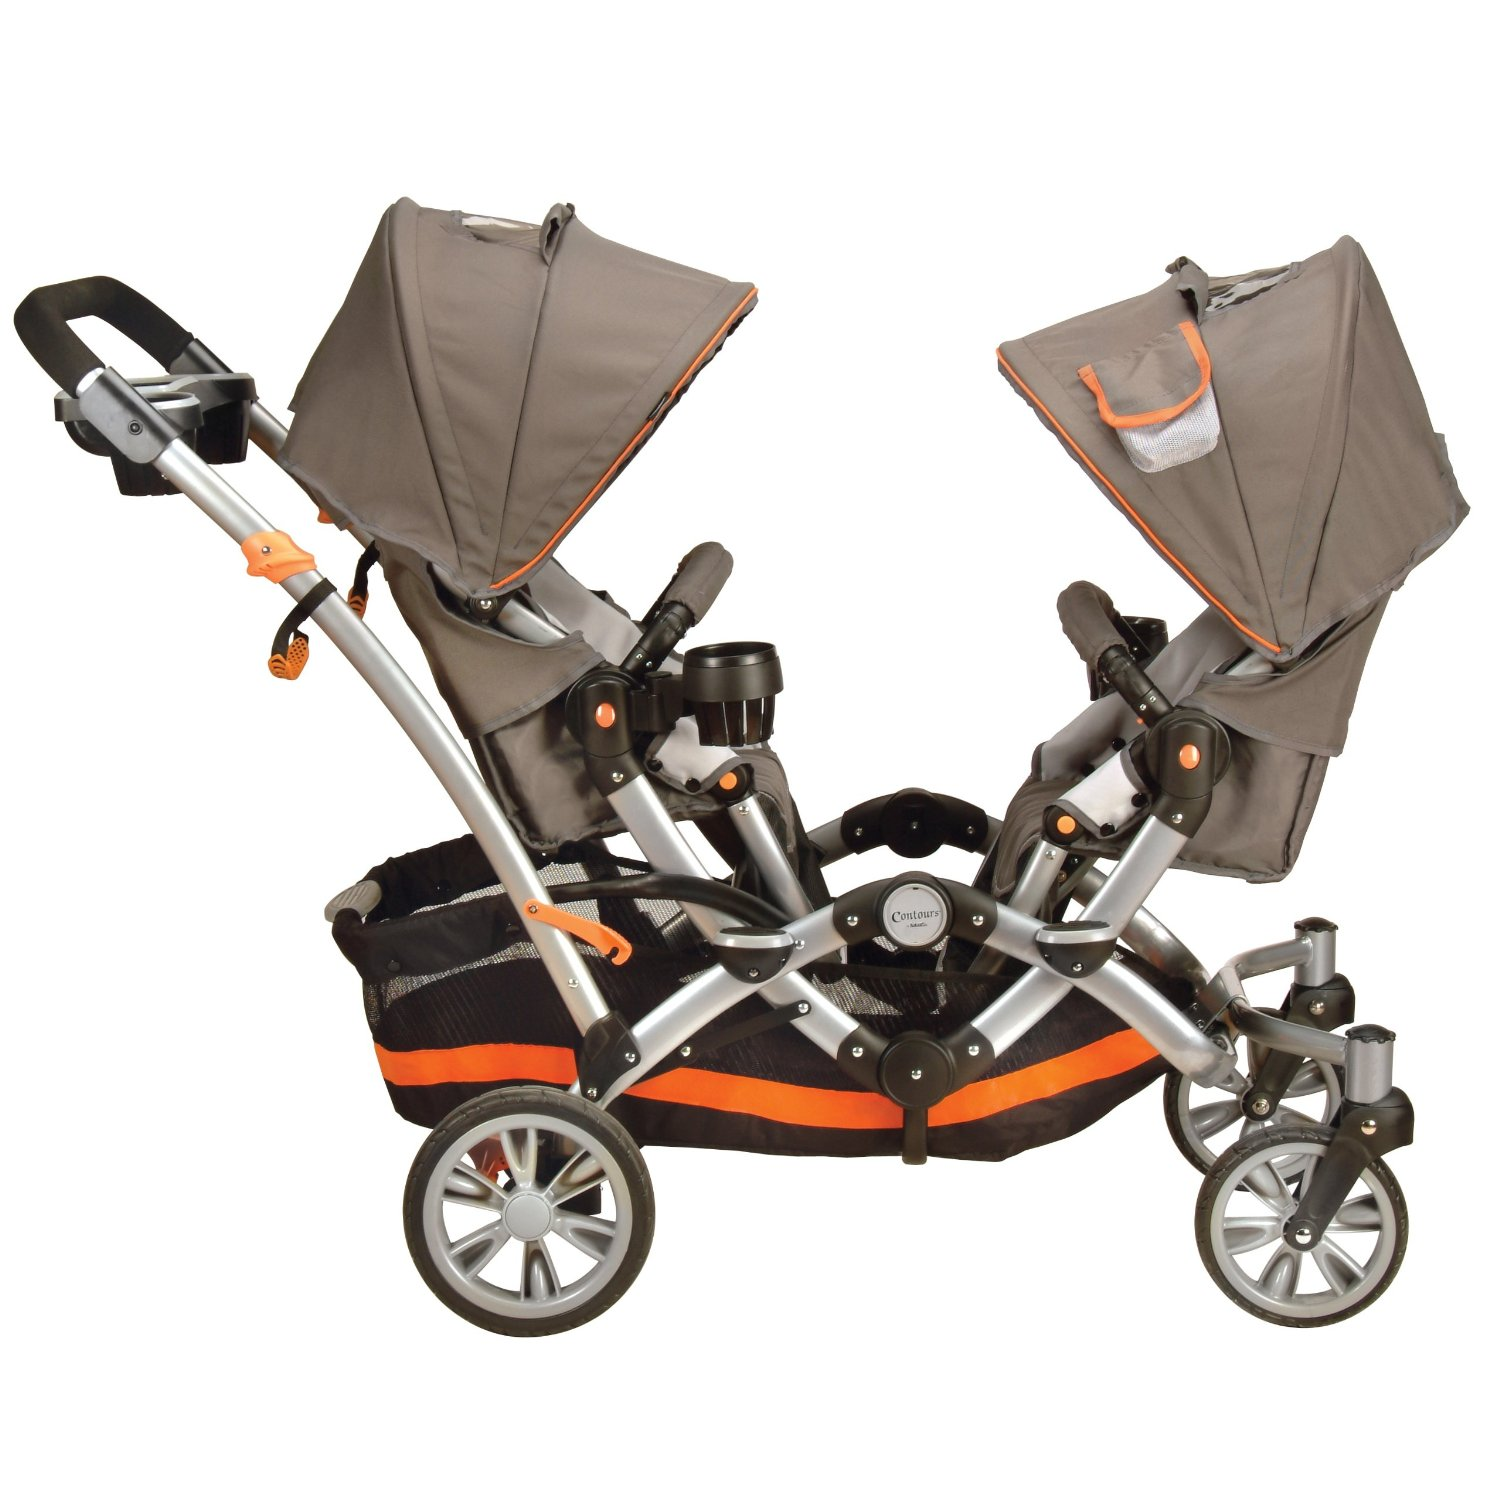 one hope left why i am purchasing the contours options tandem ii  - why i am purchasing the contours options tandem ii stroller (and summary ofonline parent reviews)